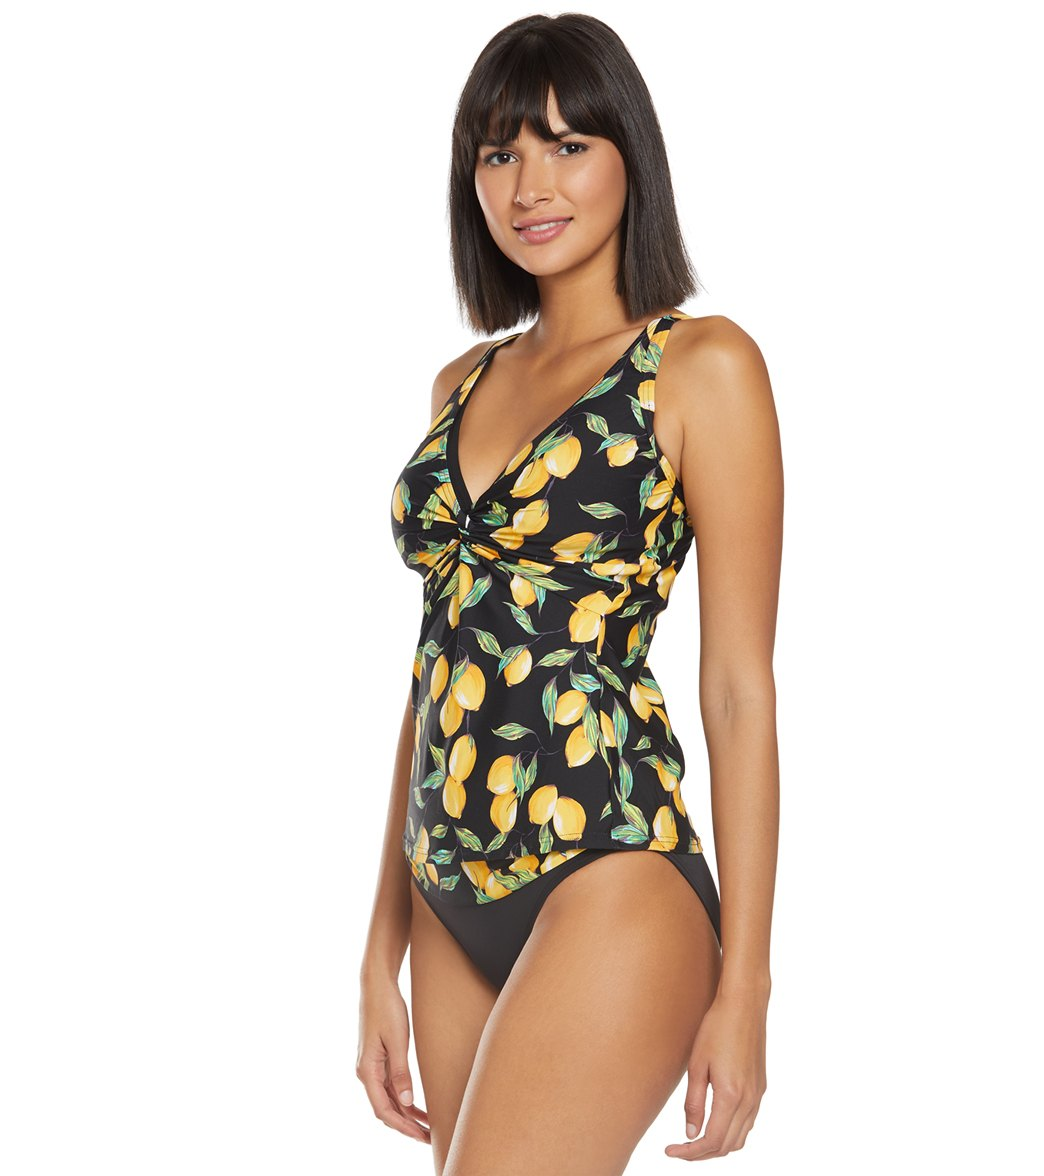 caf718215b546 Sunsets Limoncello Forever Tankini Top (D/DD Cup) at SwimOutlet.com ...